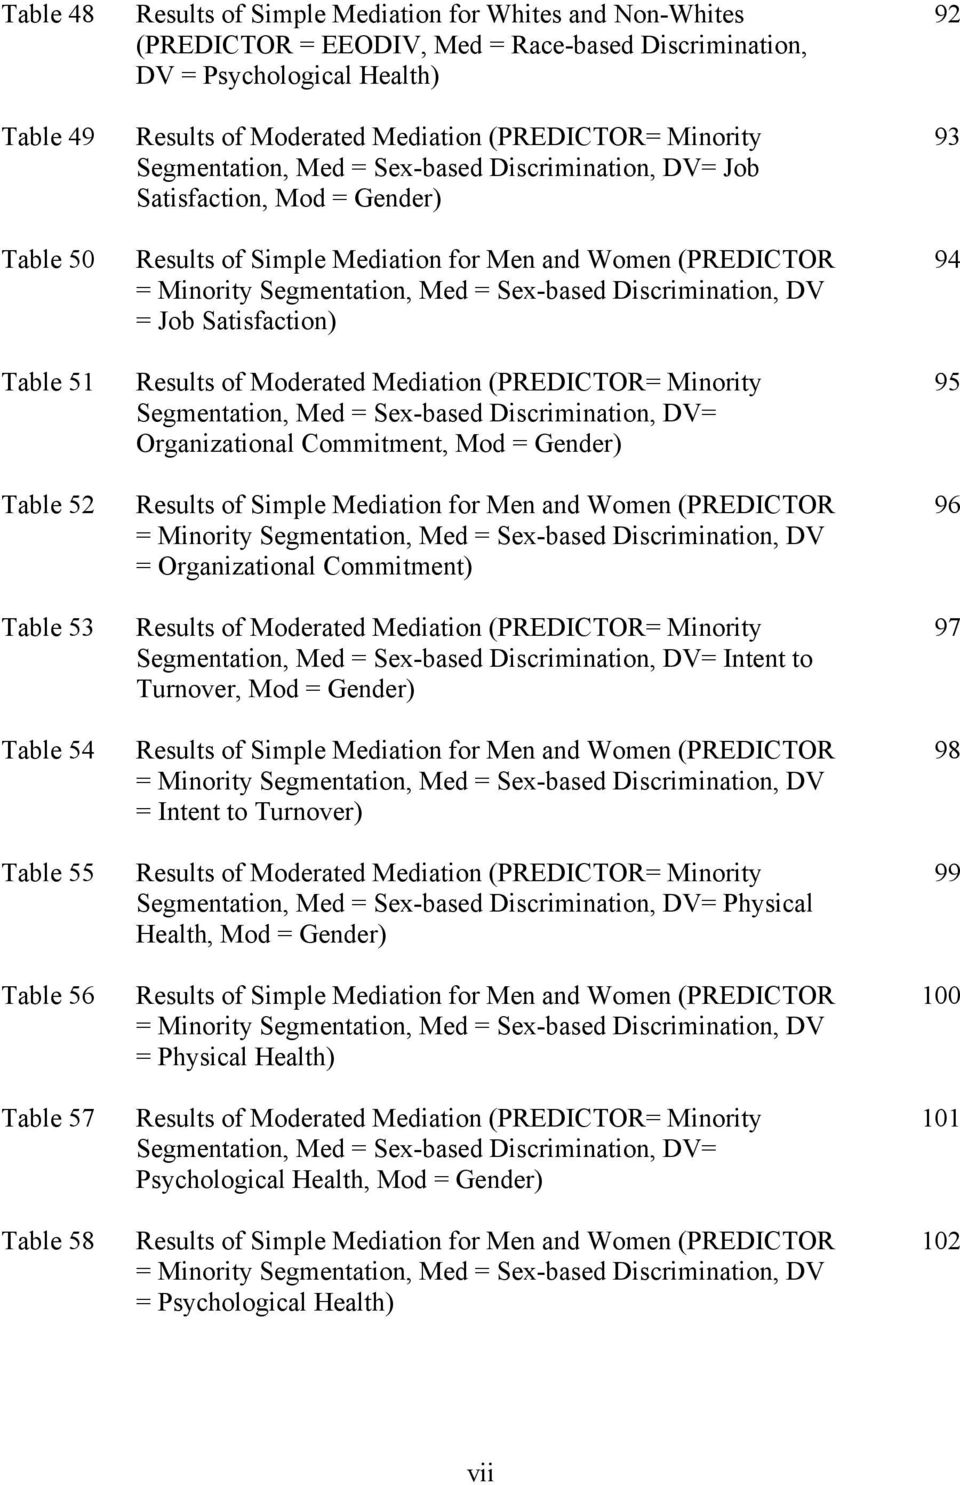 Mediation for Men and Women (PREDICTOR = Minority Segmentation, Med = Sex-based Discrimination, DV = Job Satisfaction) Results of Moderated Mediation (PREDICTOR= Minority Segmentation, Med =